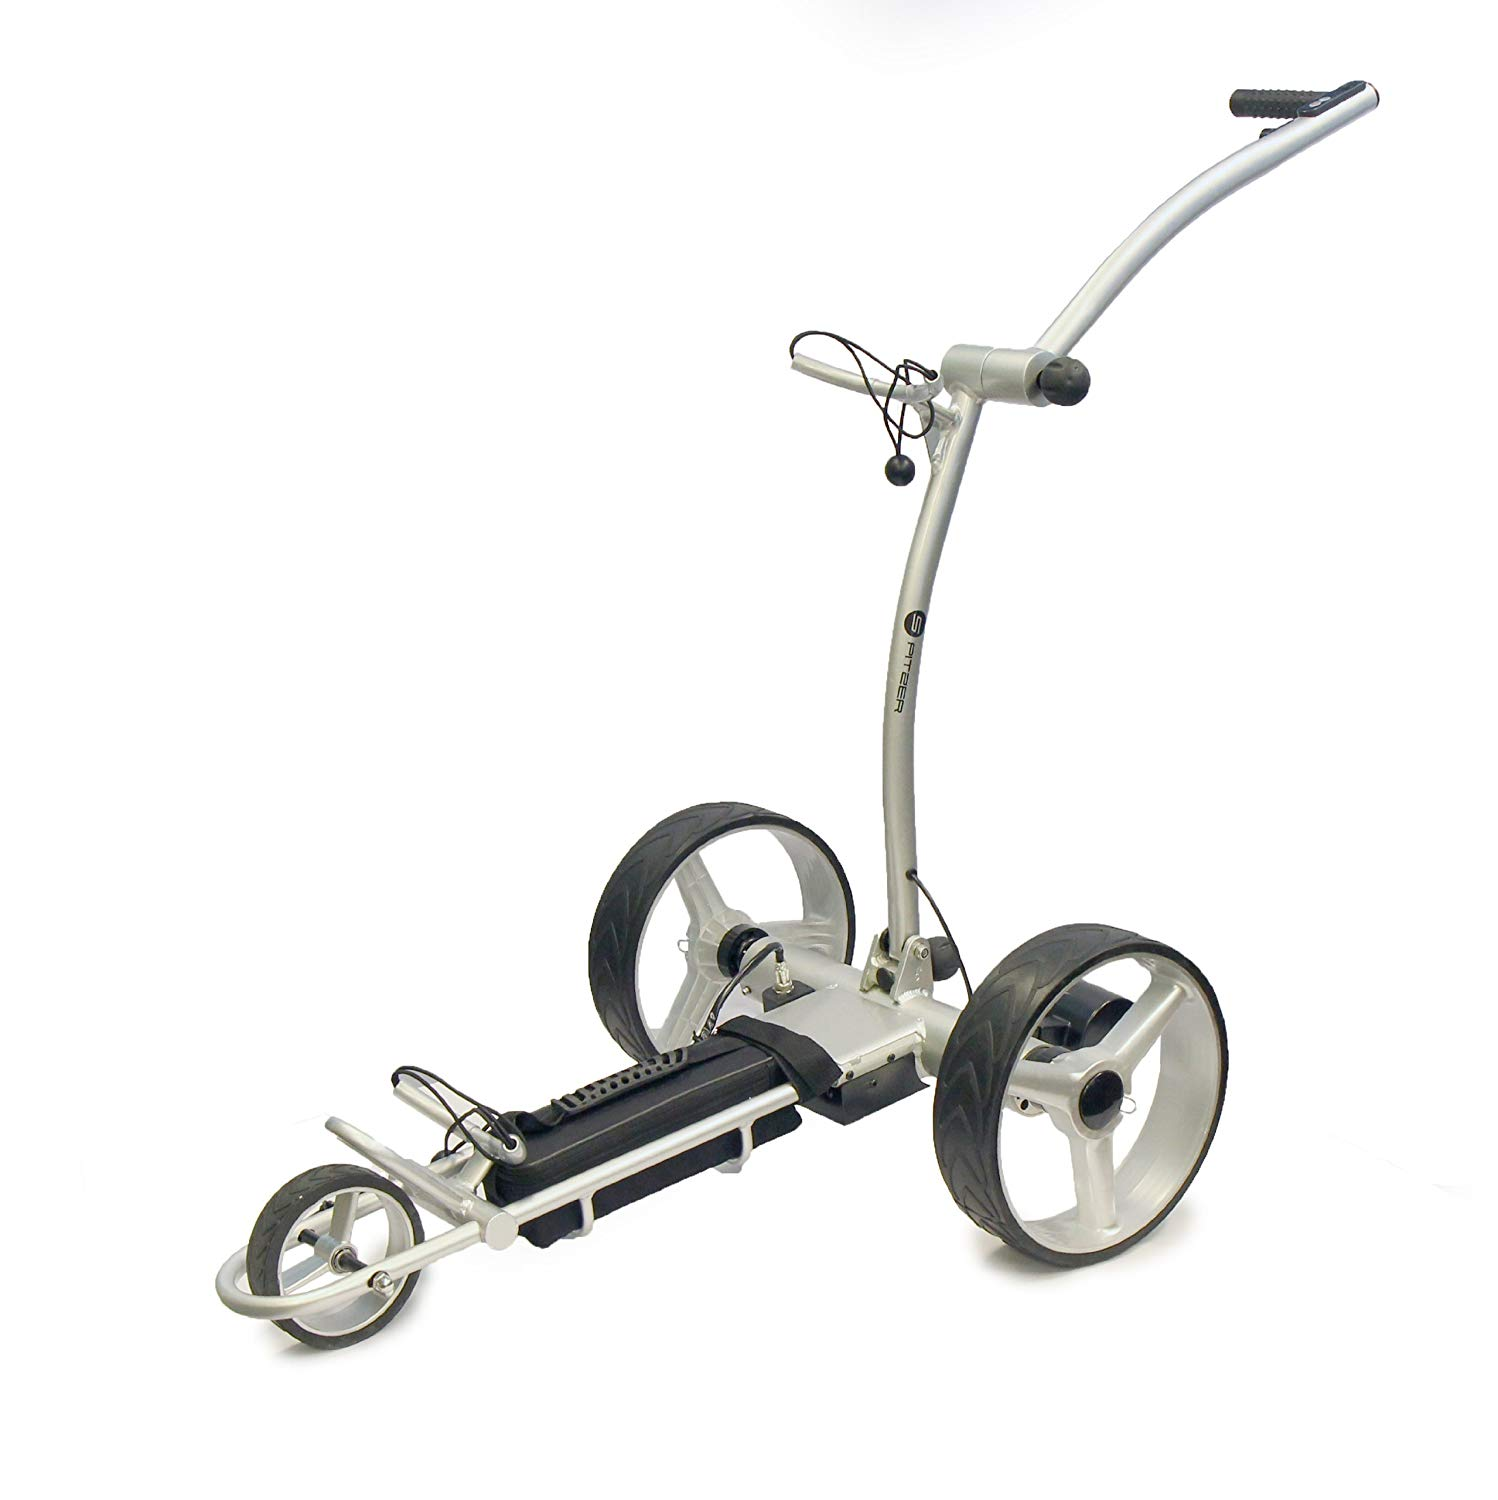 Top 10 Best Electric Golf Push Carts In 2021 Reviews 1